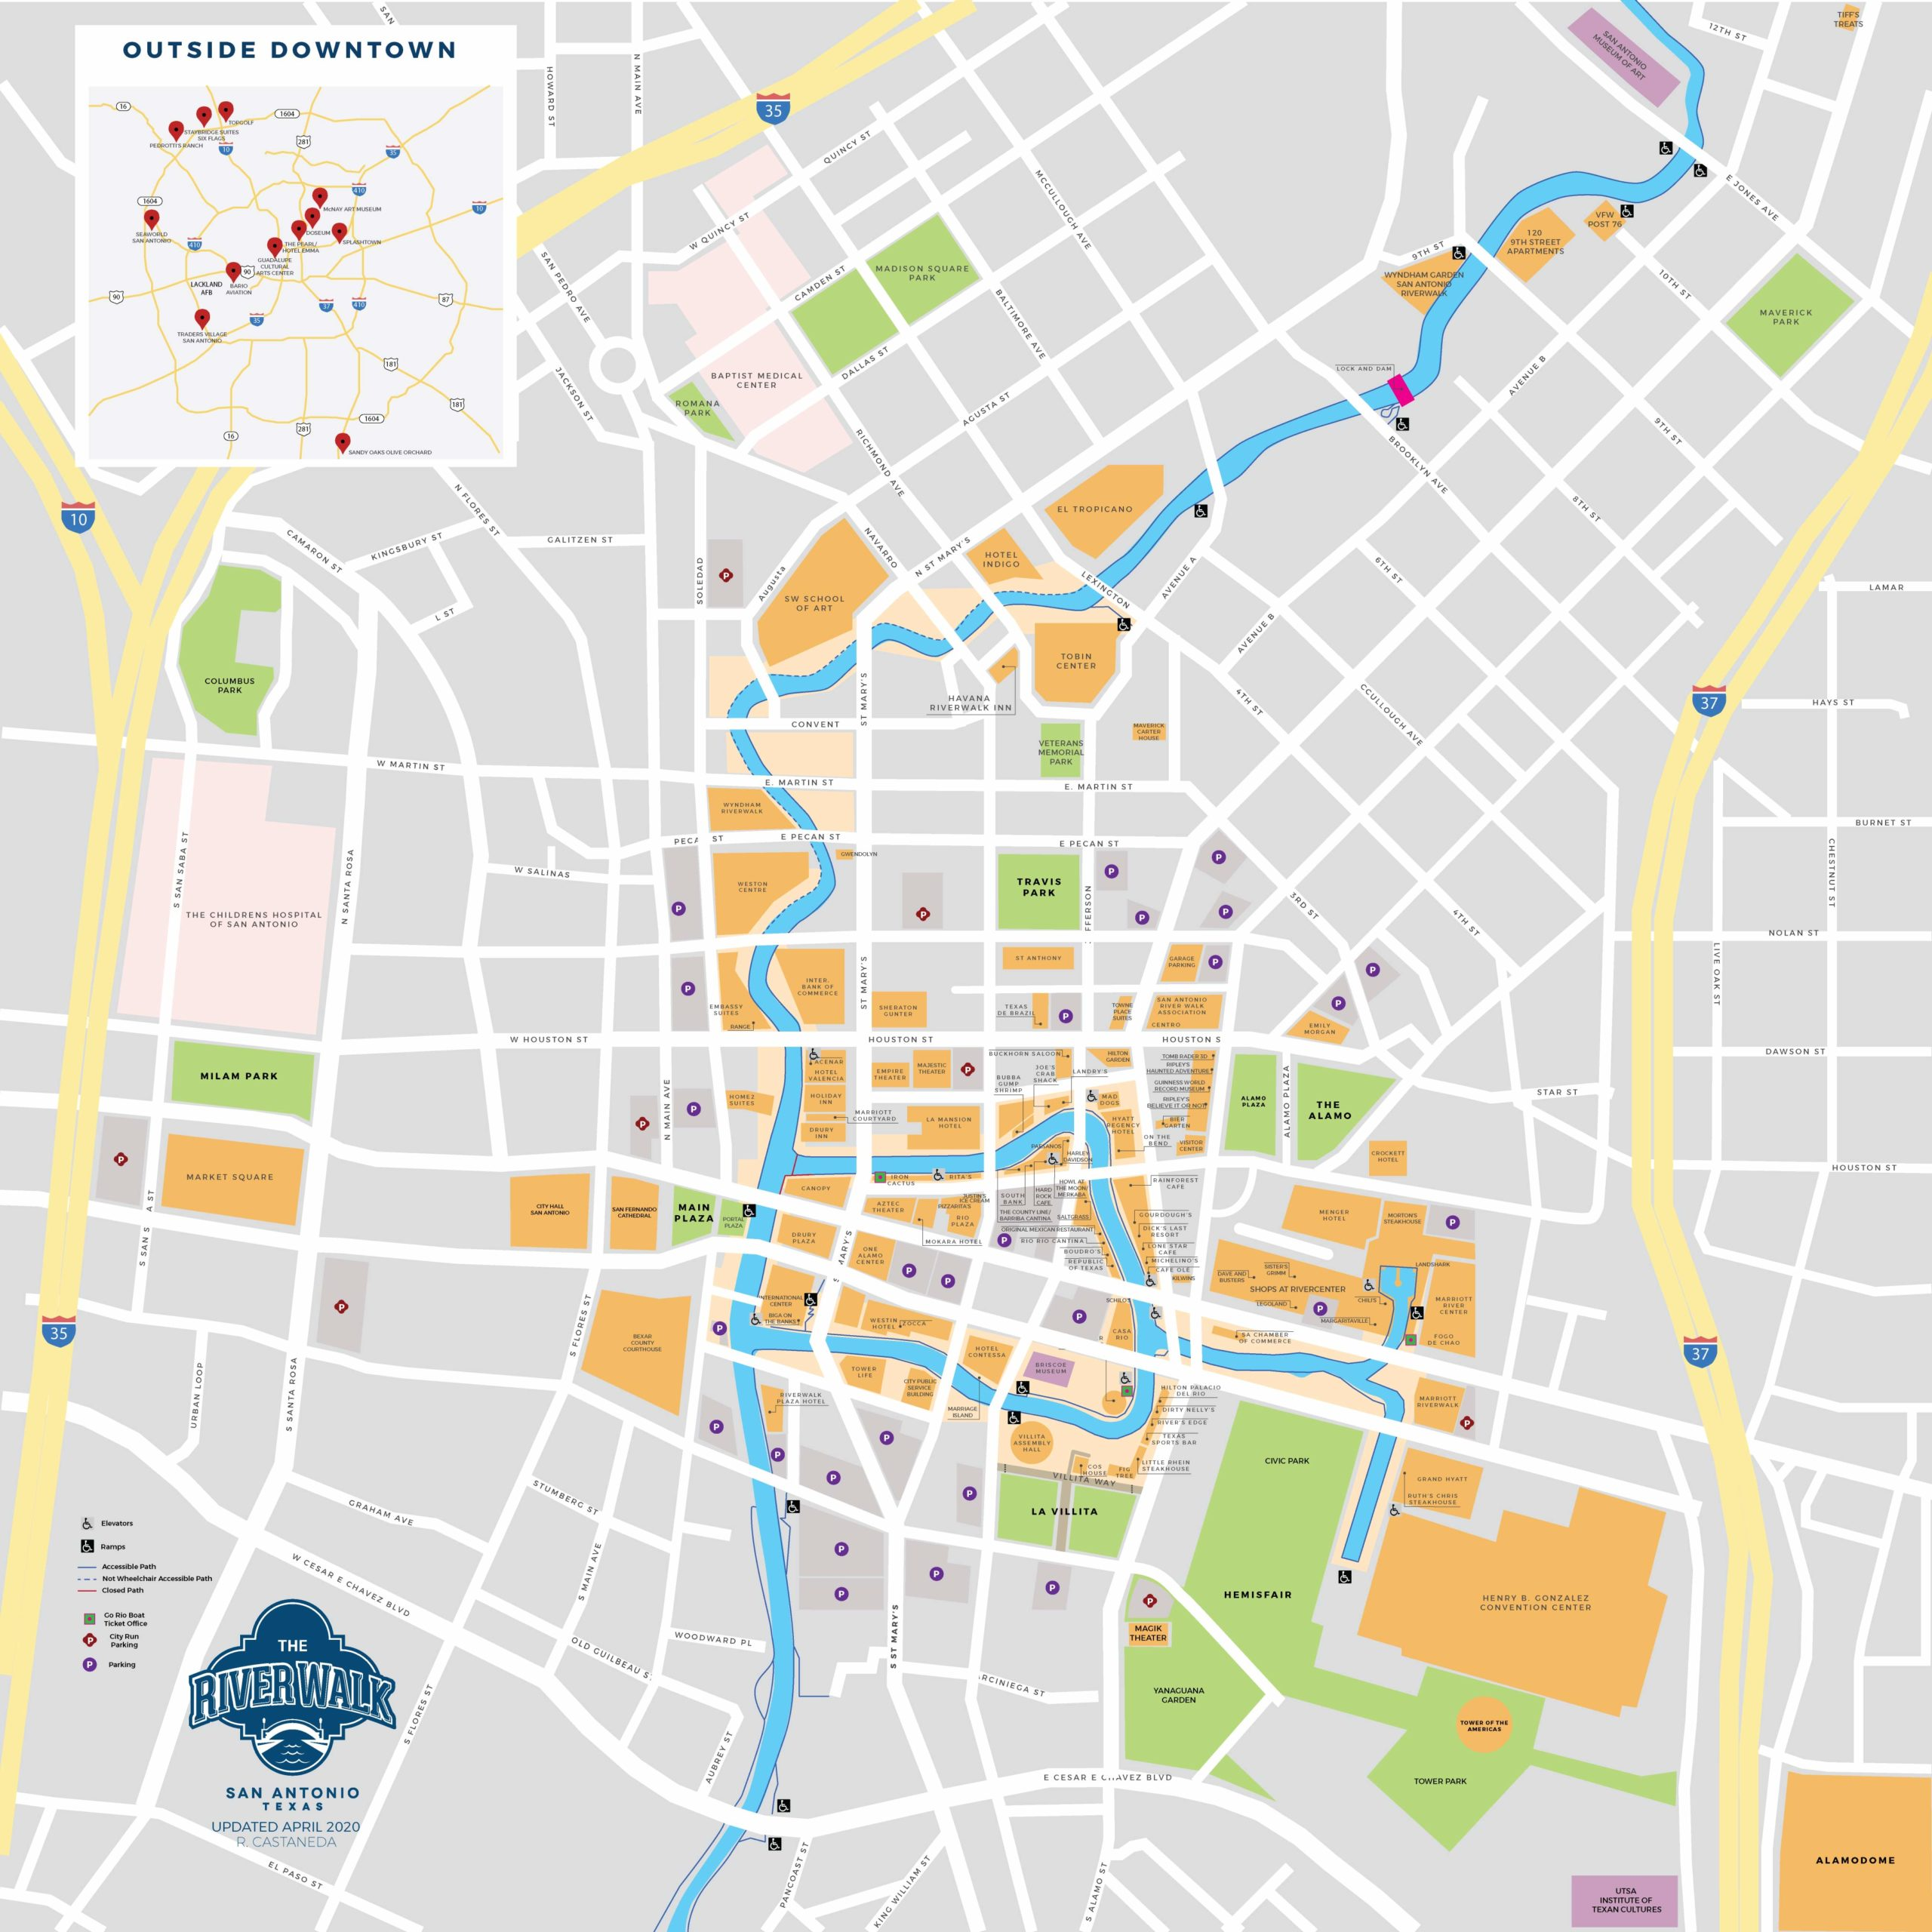 Map of the San Antonio River Walk and downtown